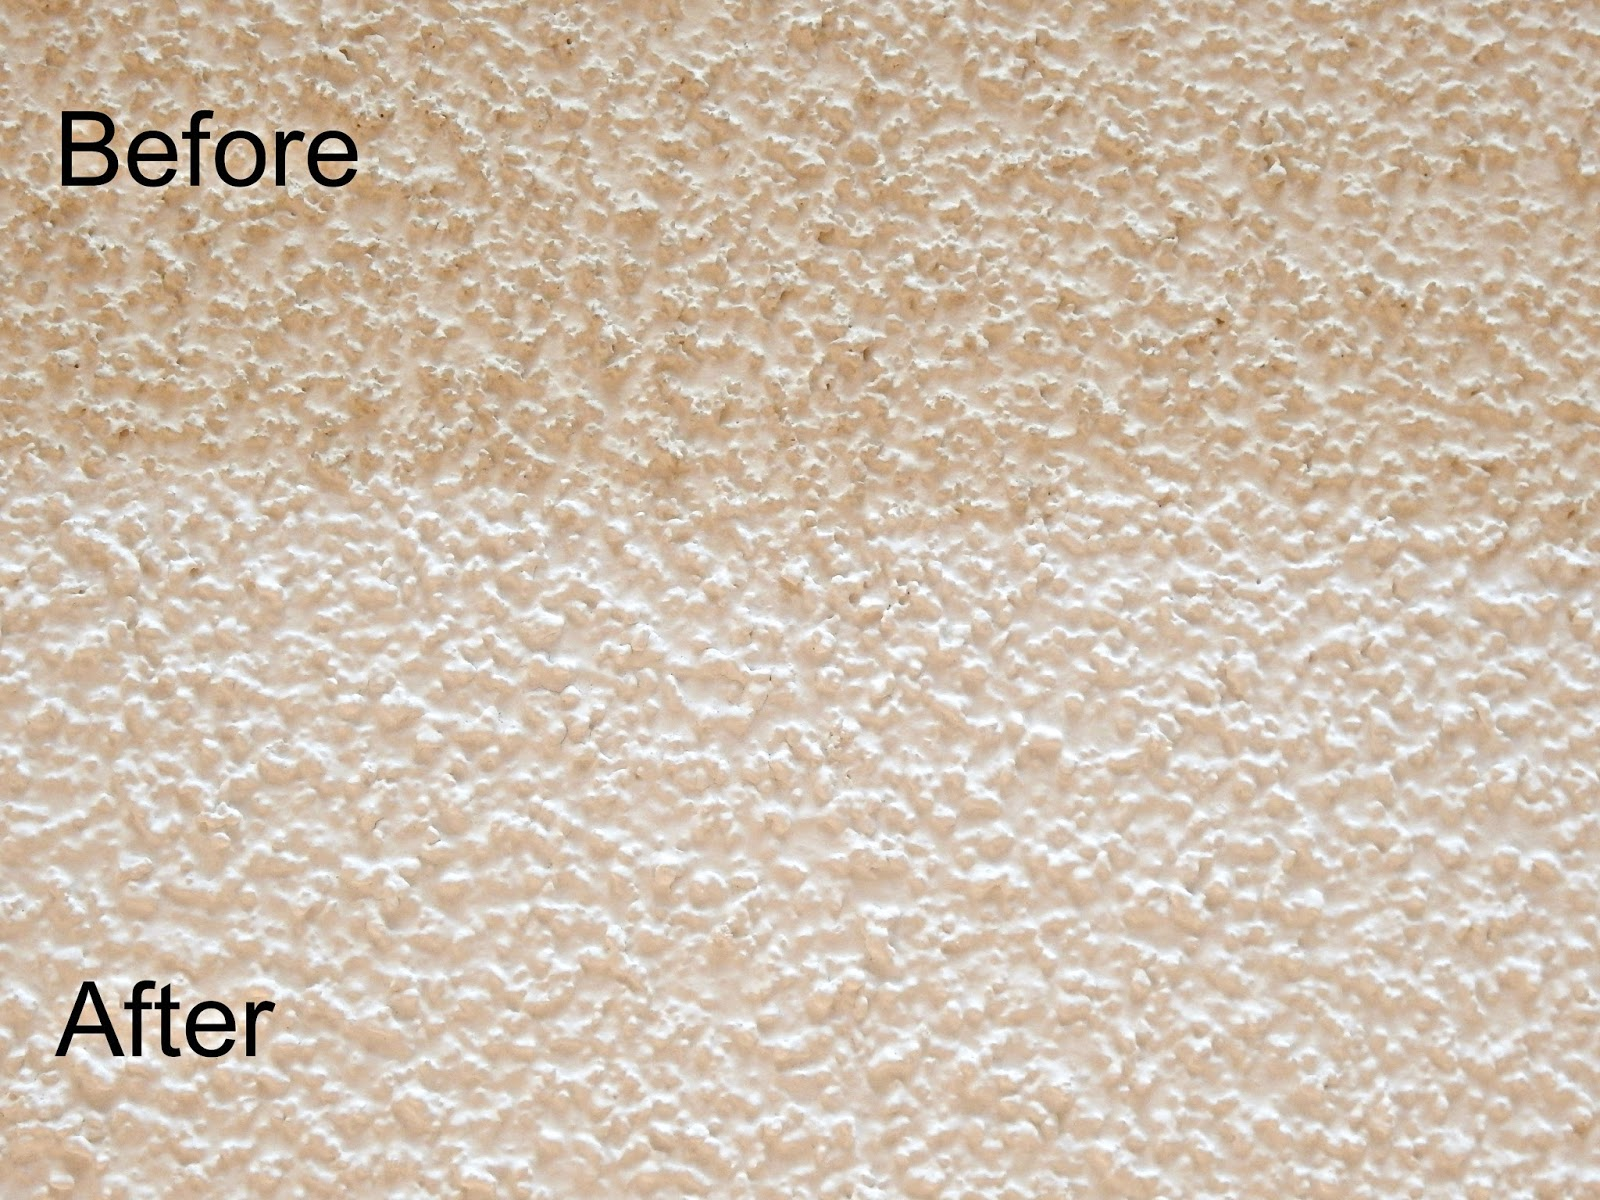 How To Get Rid Of Mold On Popcorn Ceiling In Bathroom